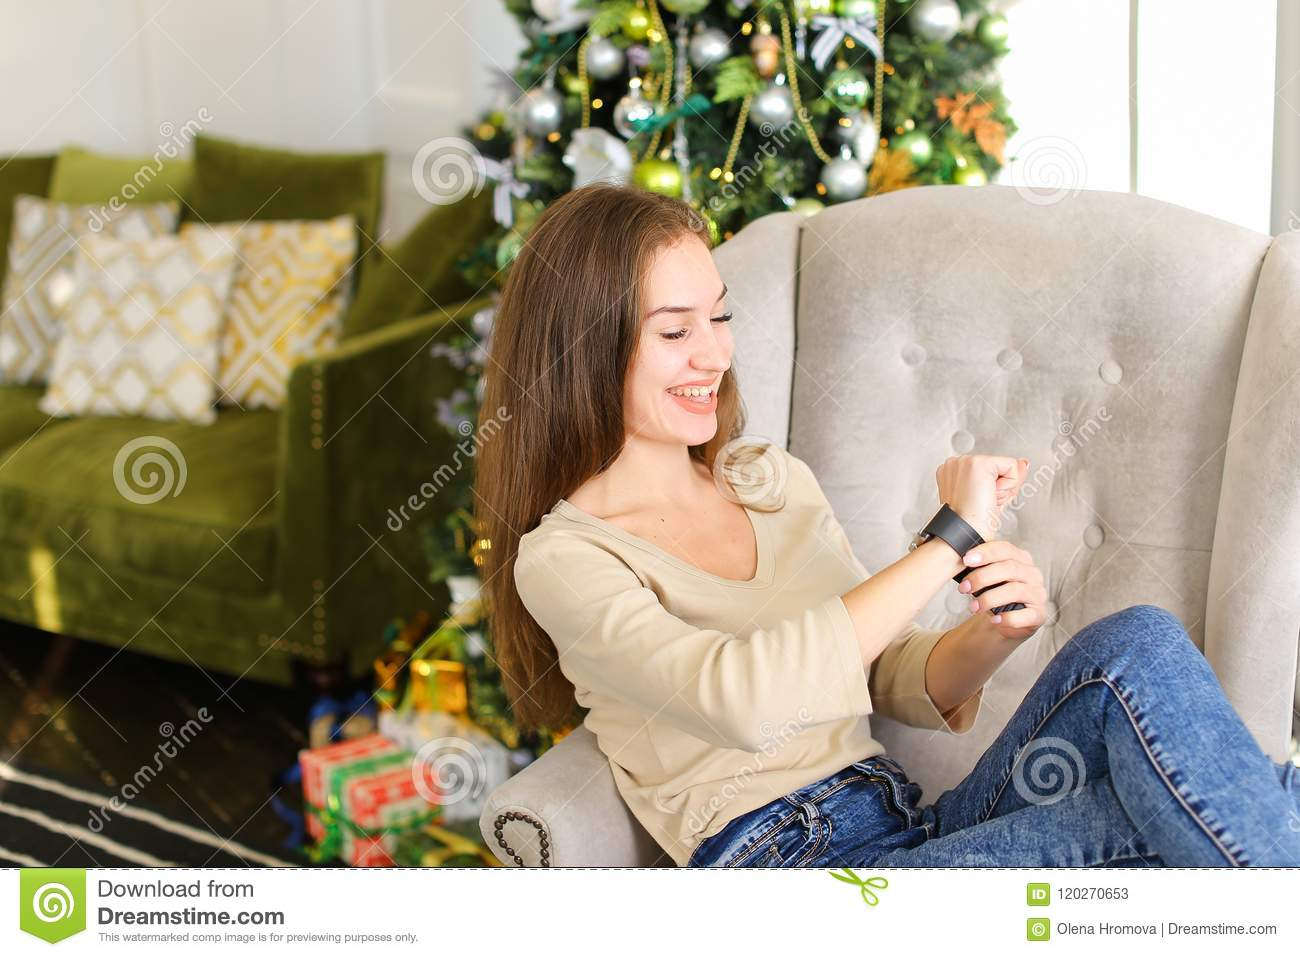 girlfriend get smartwatch from boyfriend as present for new year smiling lady sitting in chair near pinetree with gift on hand fair haired girl with neat